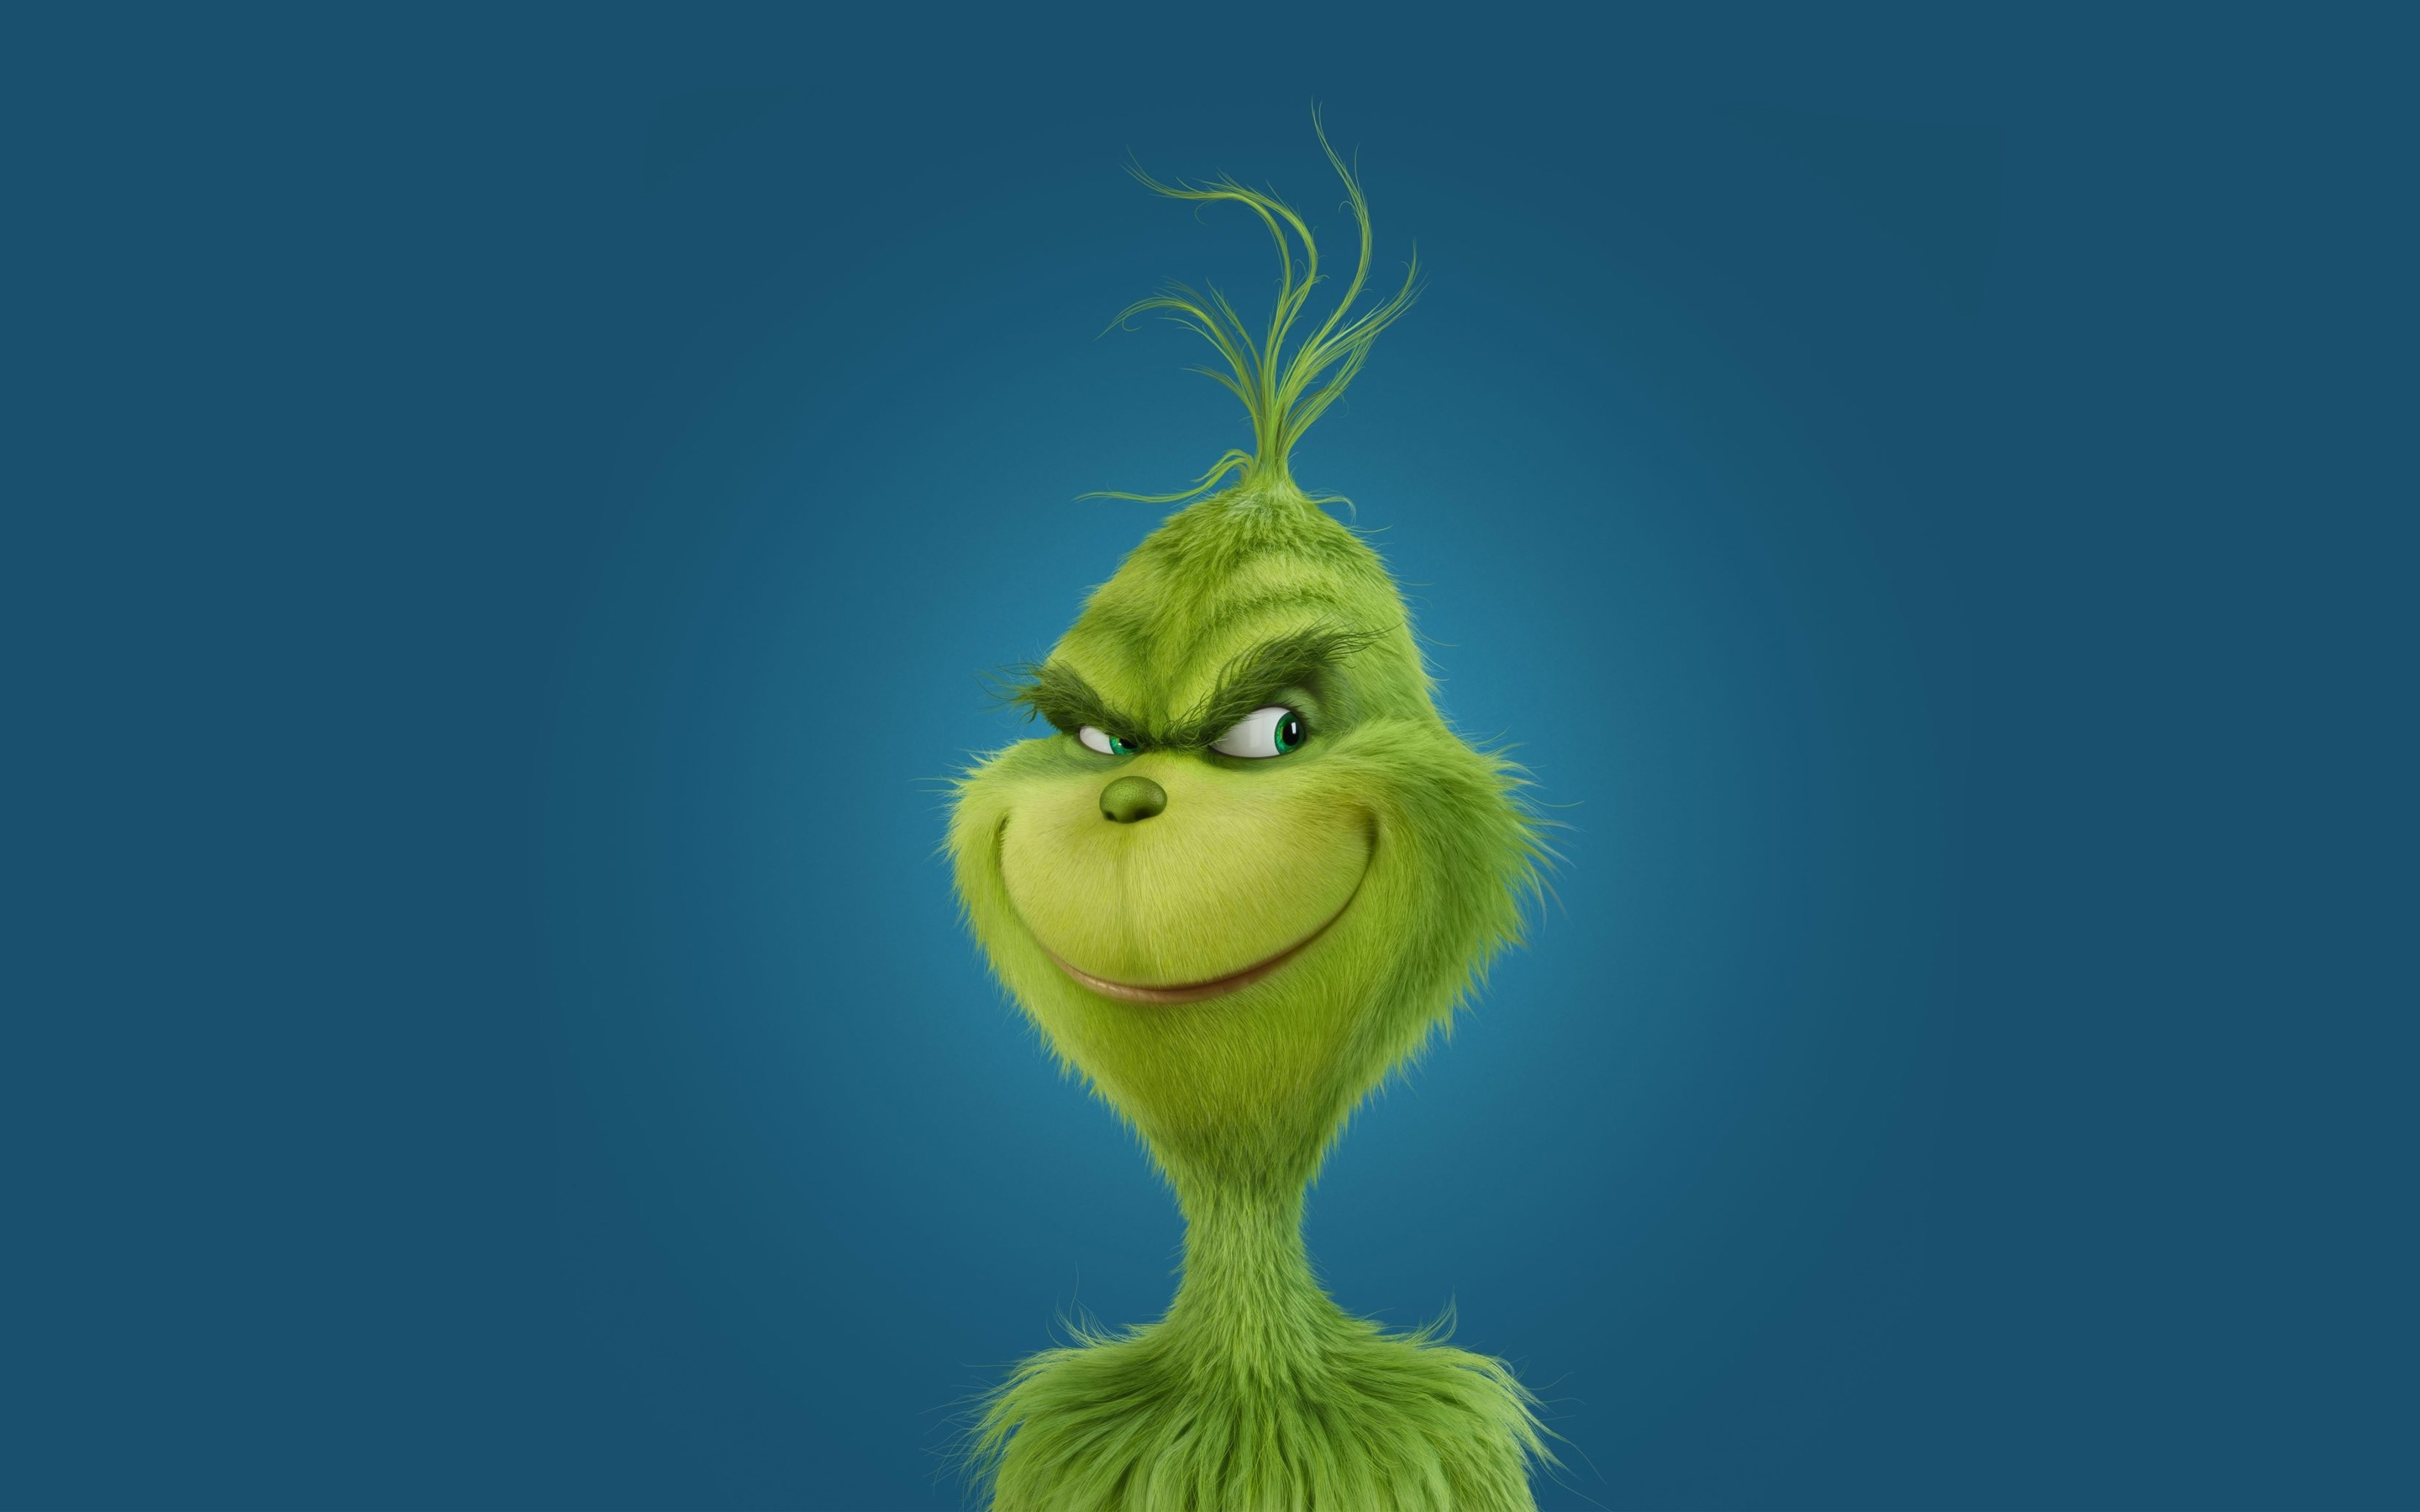 The Grinch is a fictional green character created by Dr Seuss He is best known as the main character of the childrens book How the Grinch Stole Christmas!